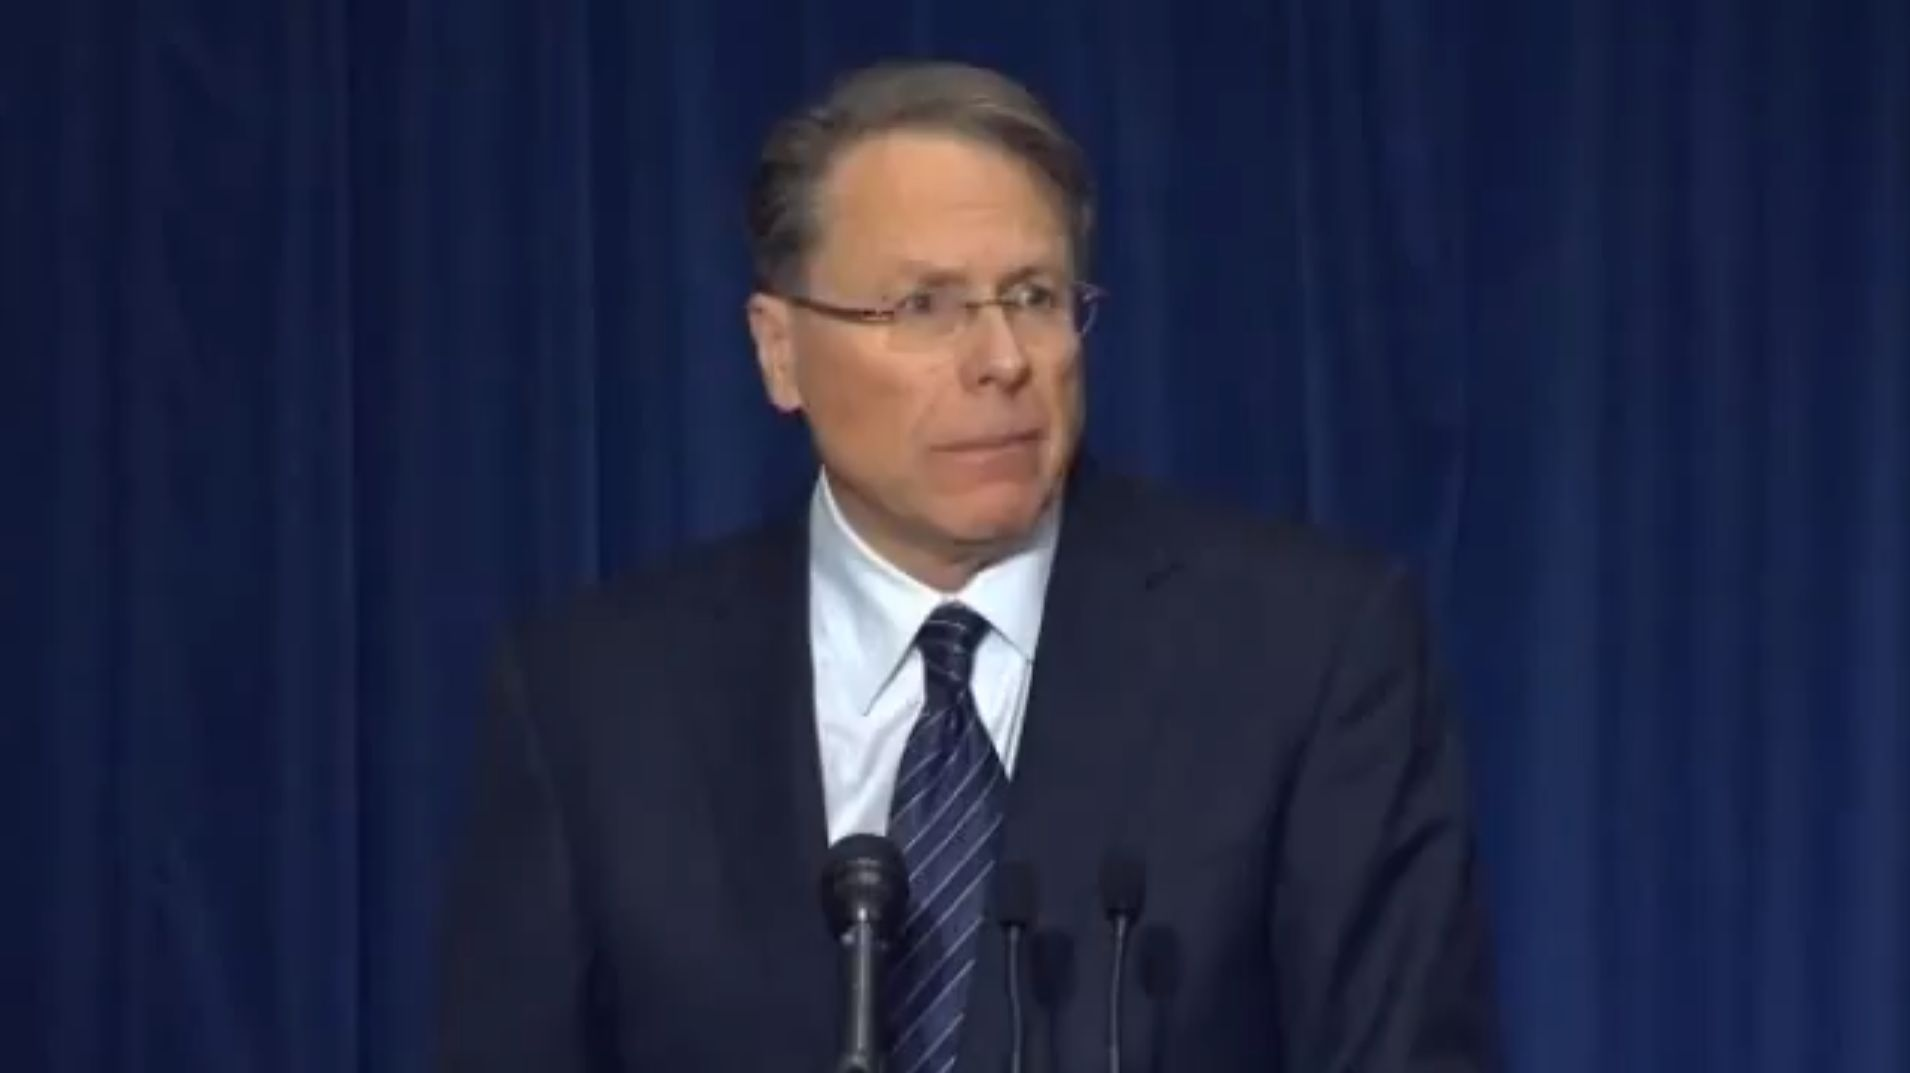 Wayne LaPierre spoke to the American people in a NRA press conference after the Newtown massacre.